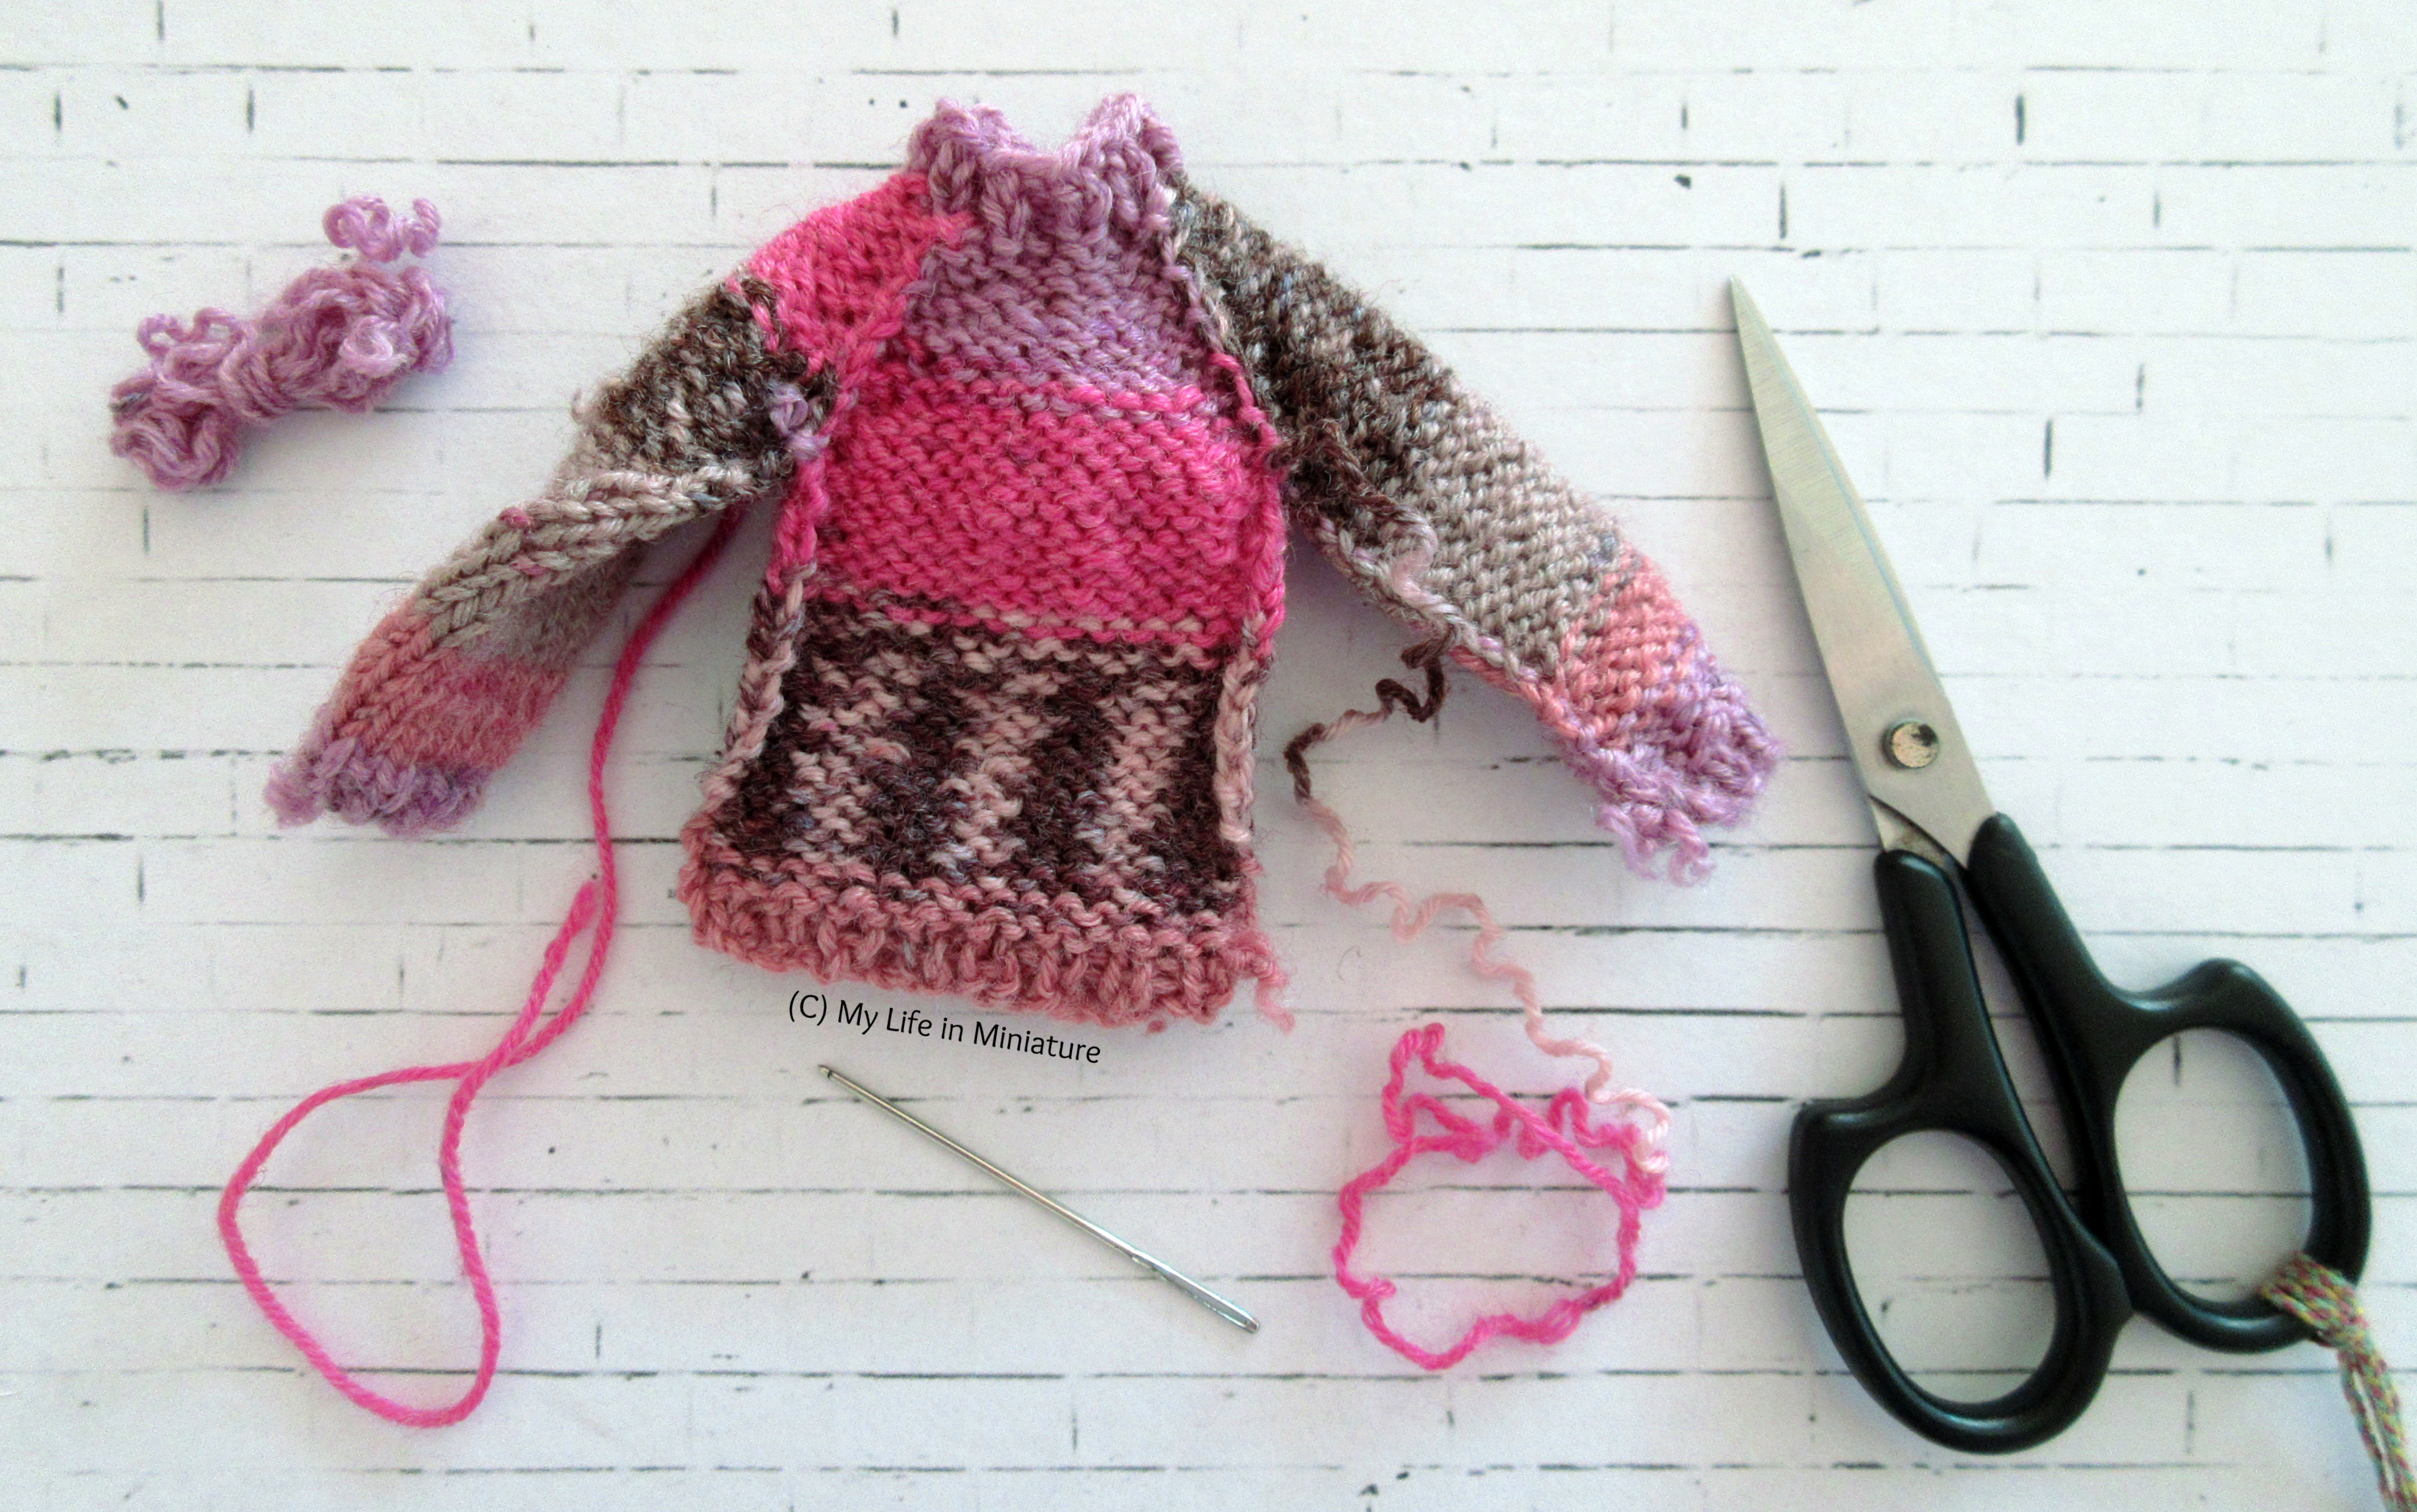 The pink jumper is shown mid-assembly on a white brick background. The four panels are sewn together, but the arm and side seams are not sewn yet. A needle and a pair of embroidery scissors are also visible.